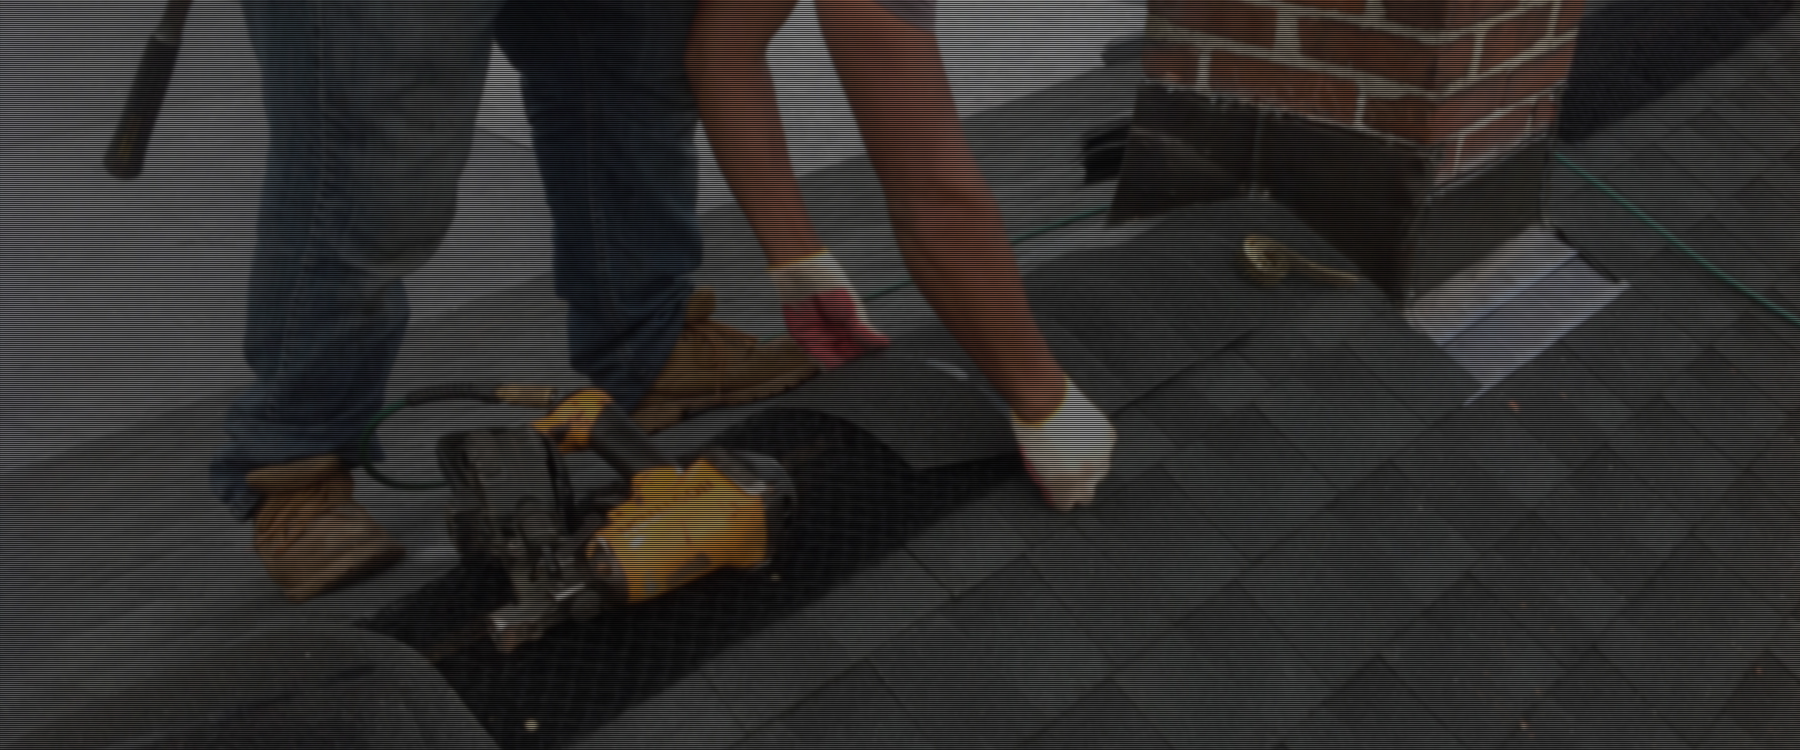 Common Shingle Nailing Problems